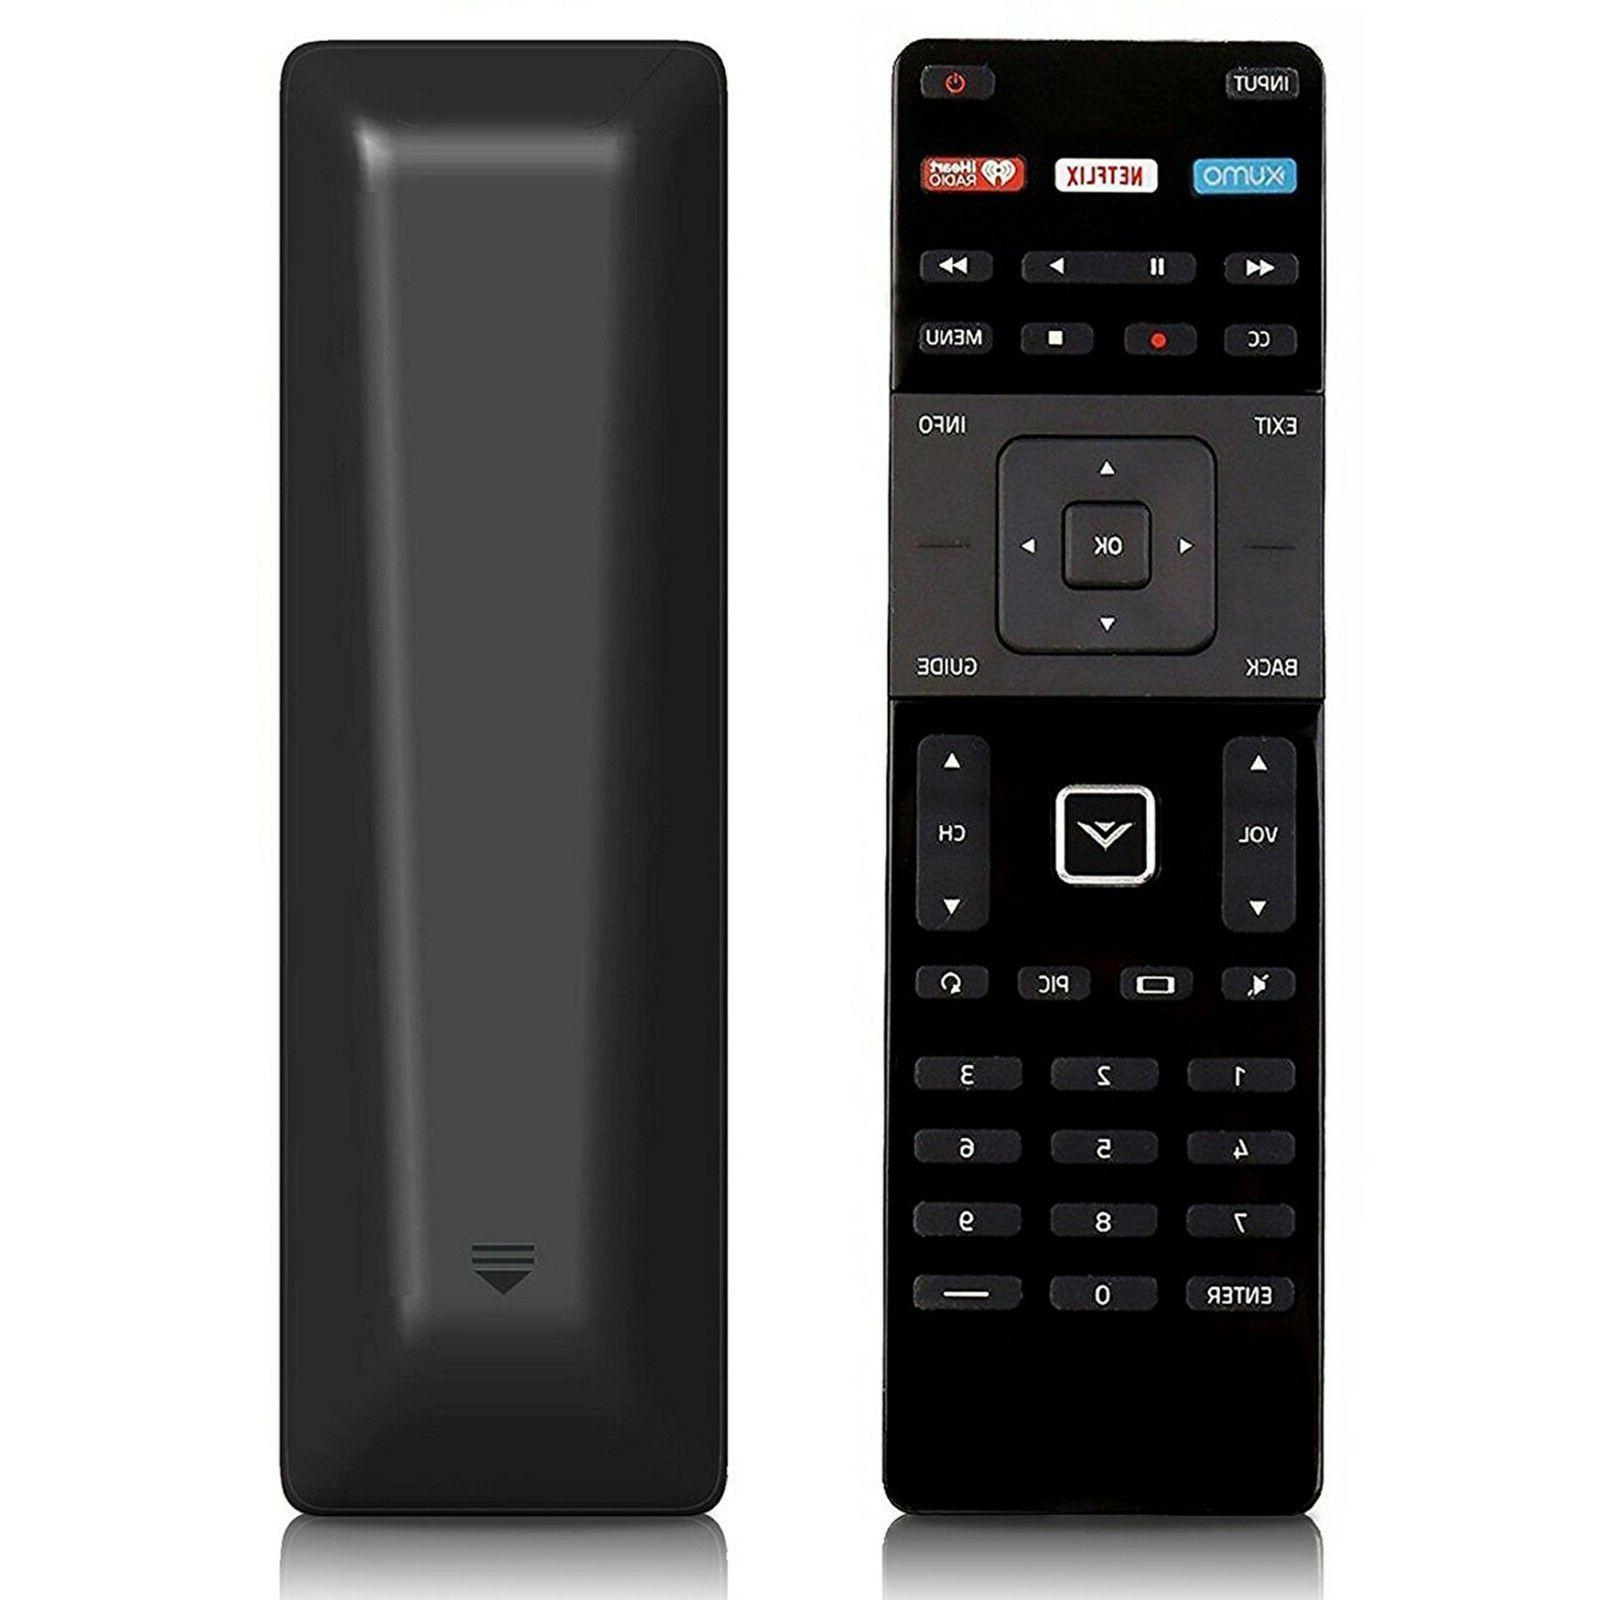 New TV Remote Control XRT122 with Netflix iHeart XUMO